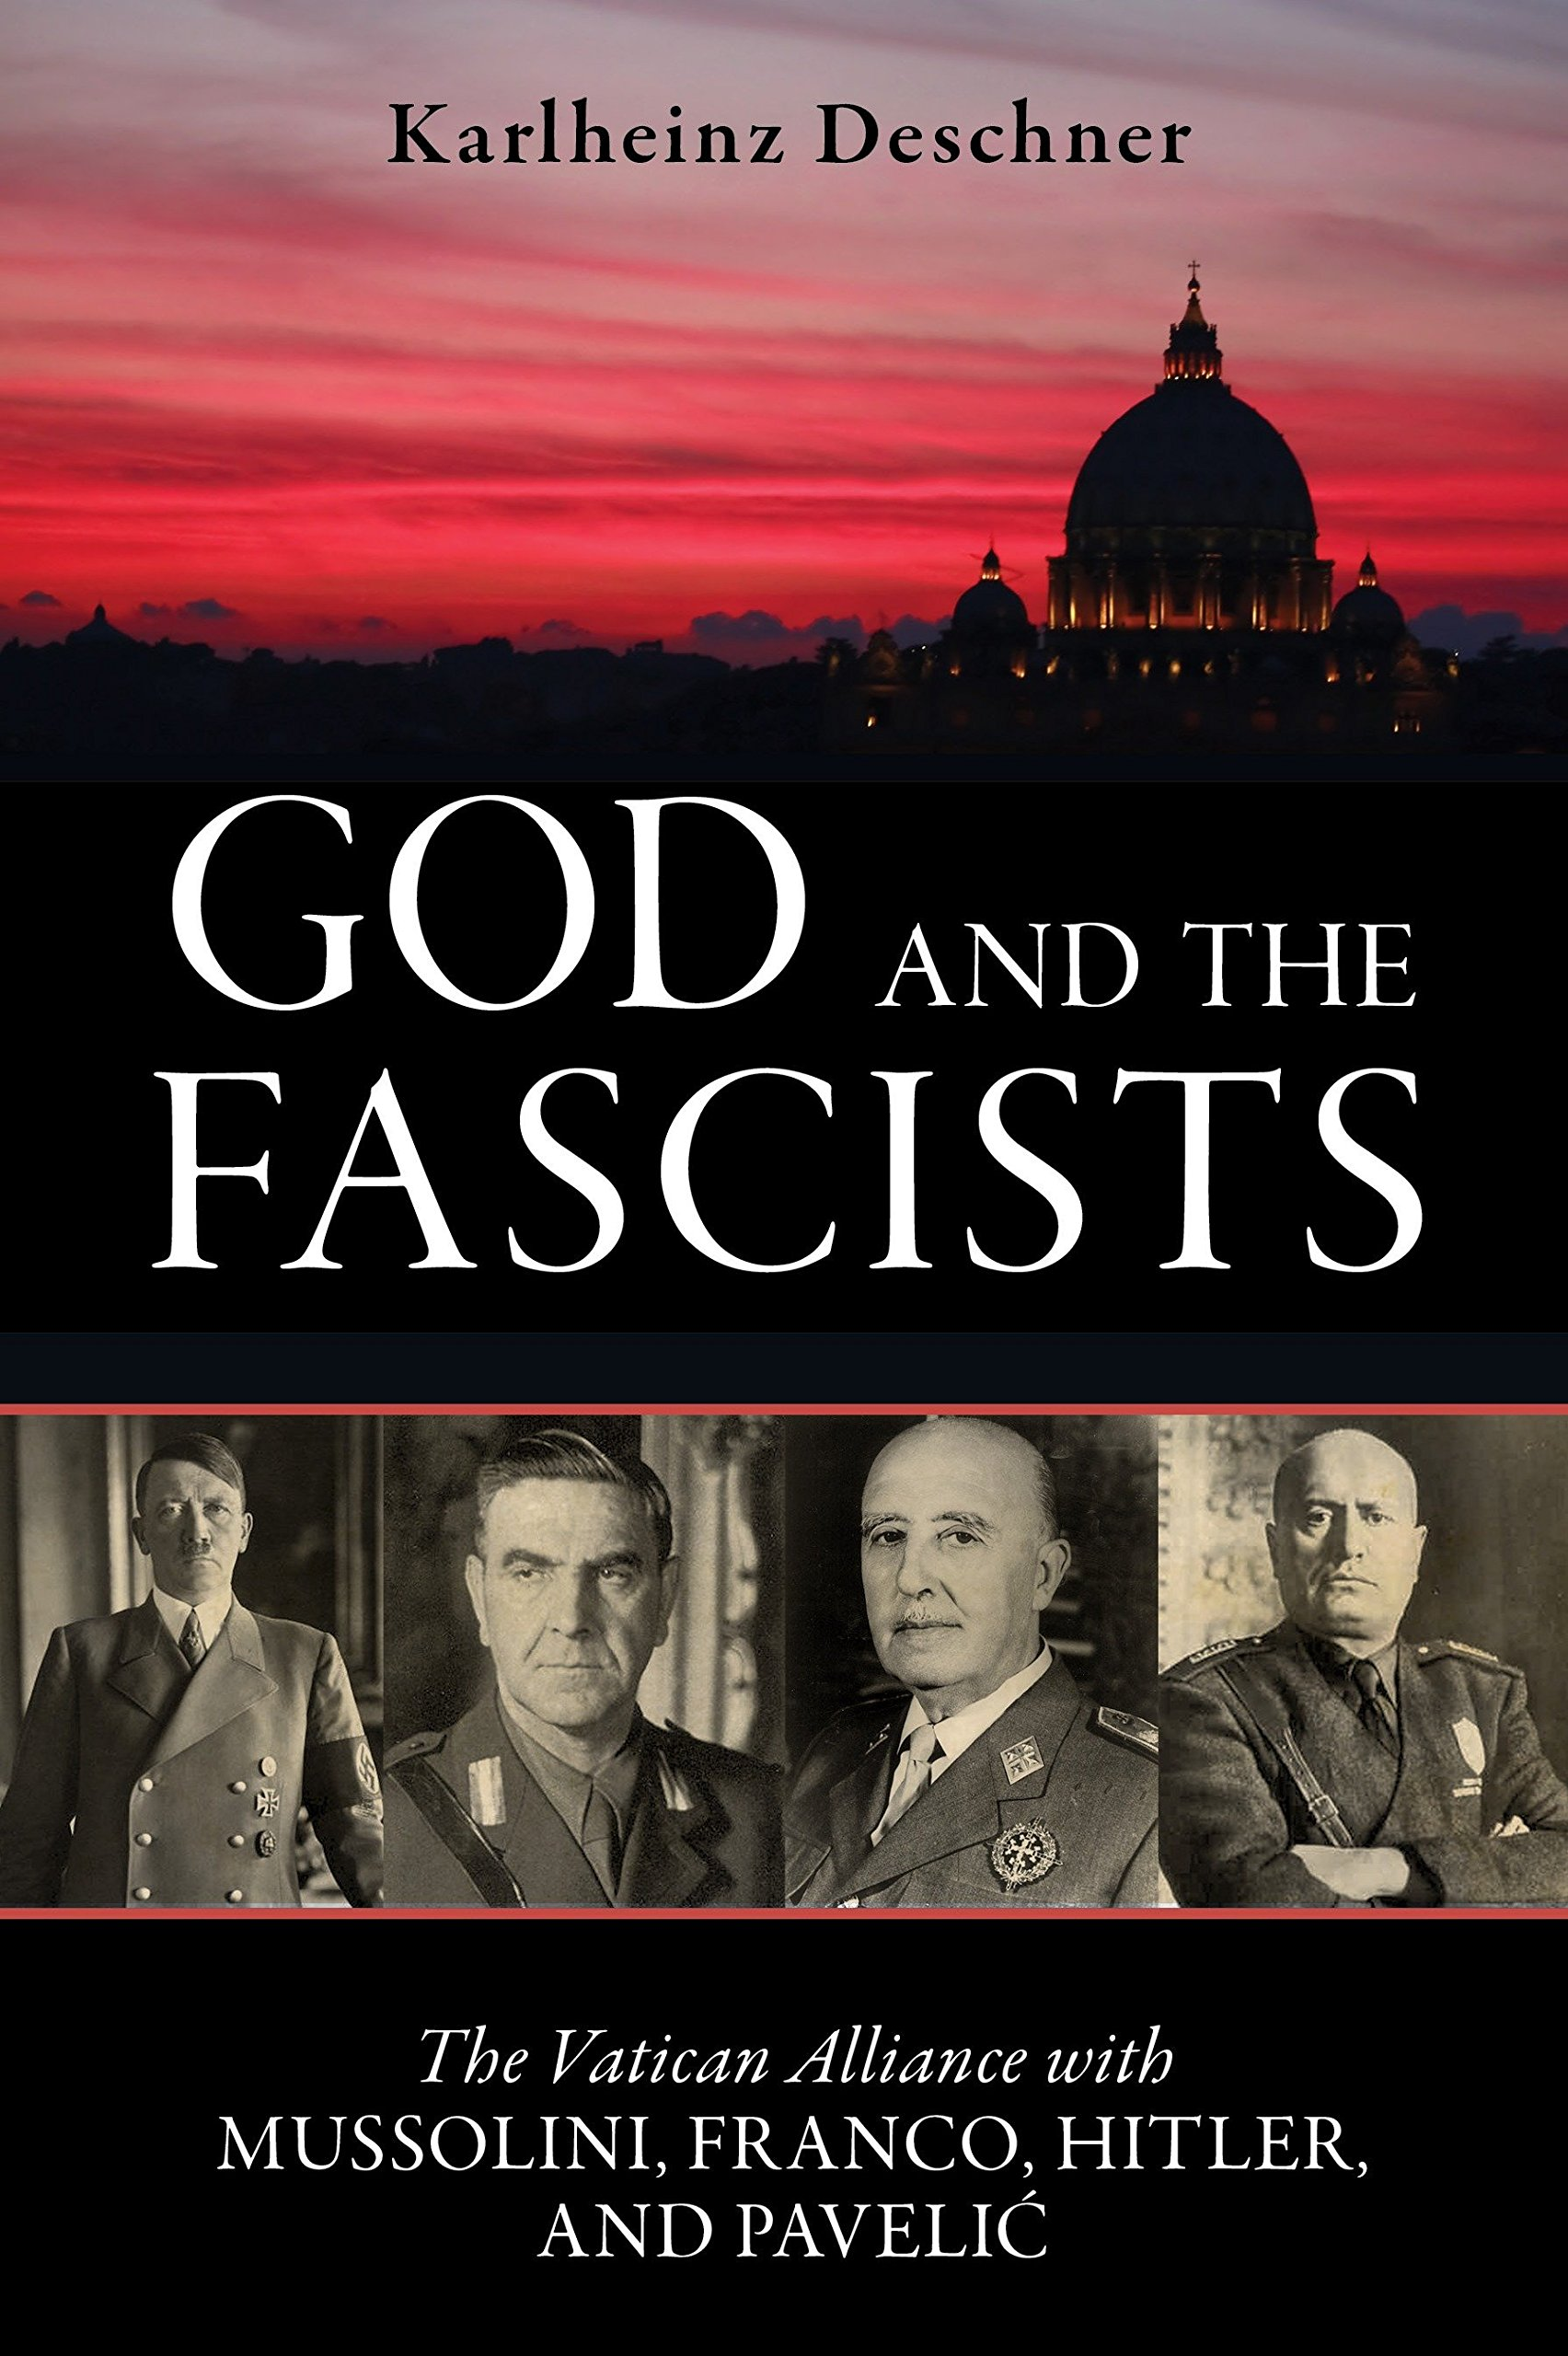 Italian fascism and homosexuality and christianity